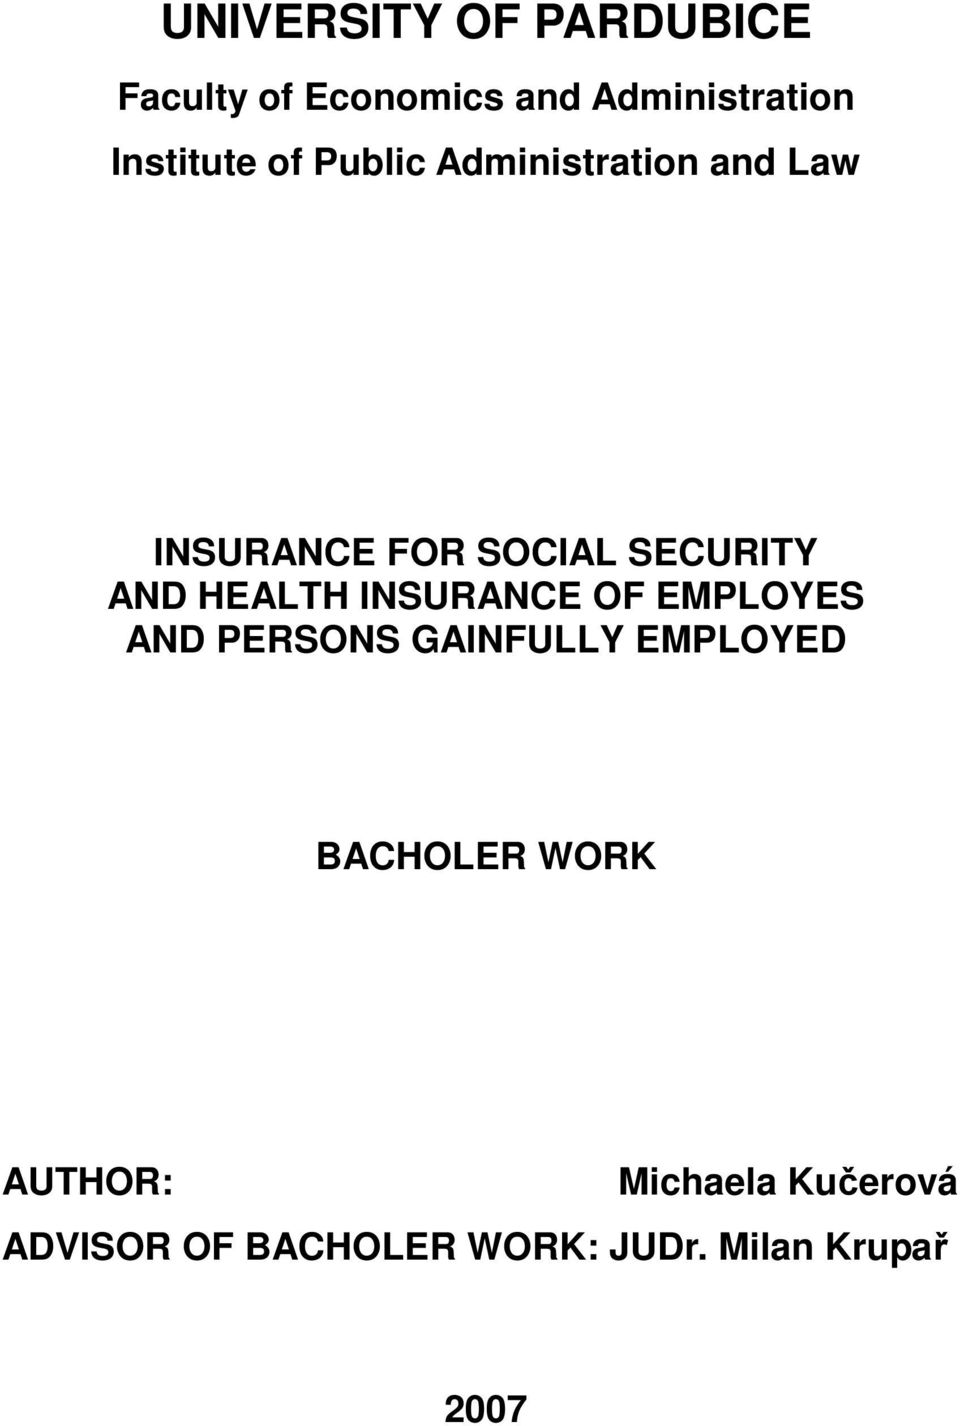 AND HEALTH INSURANCE OF EMPLOYES AND PERSONS GAINFULLY EMPLOYED BACHOLER